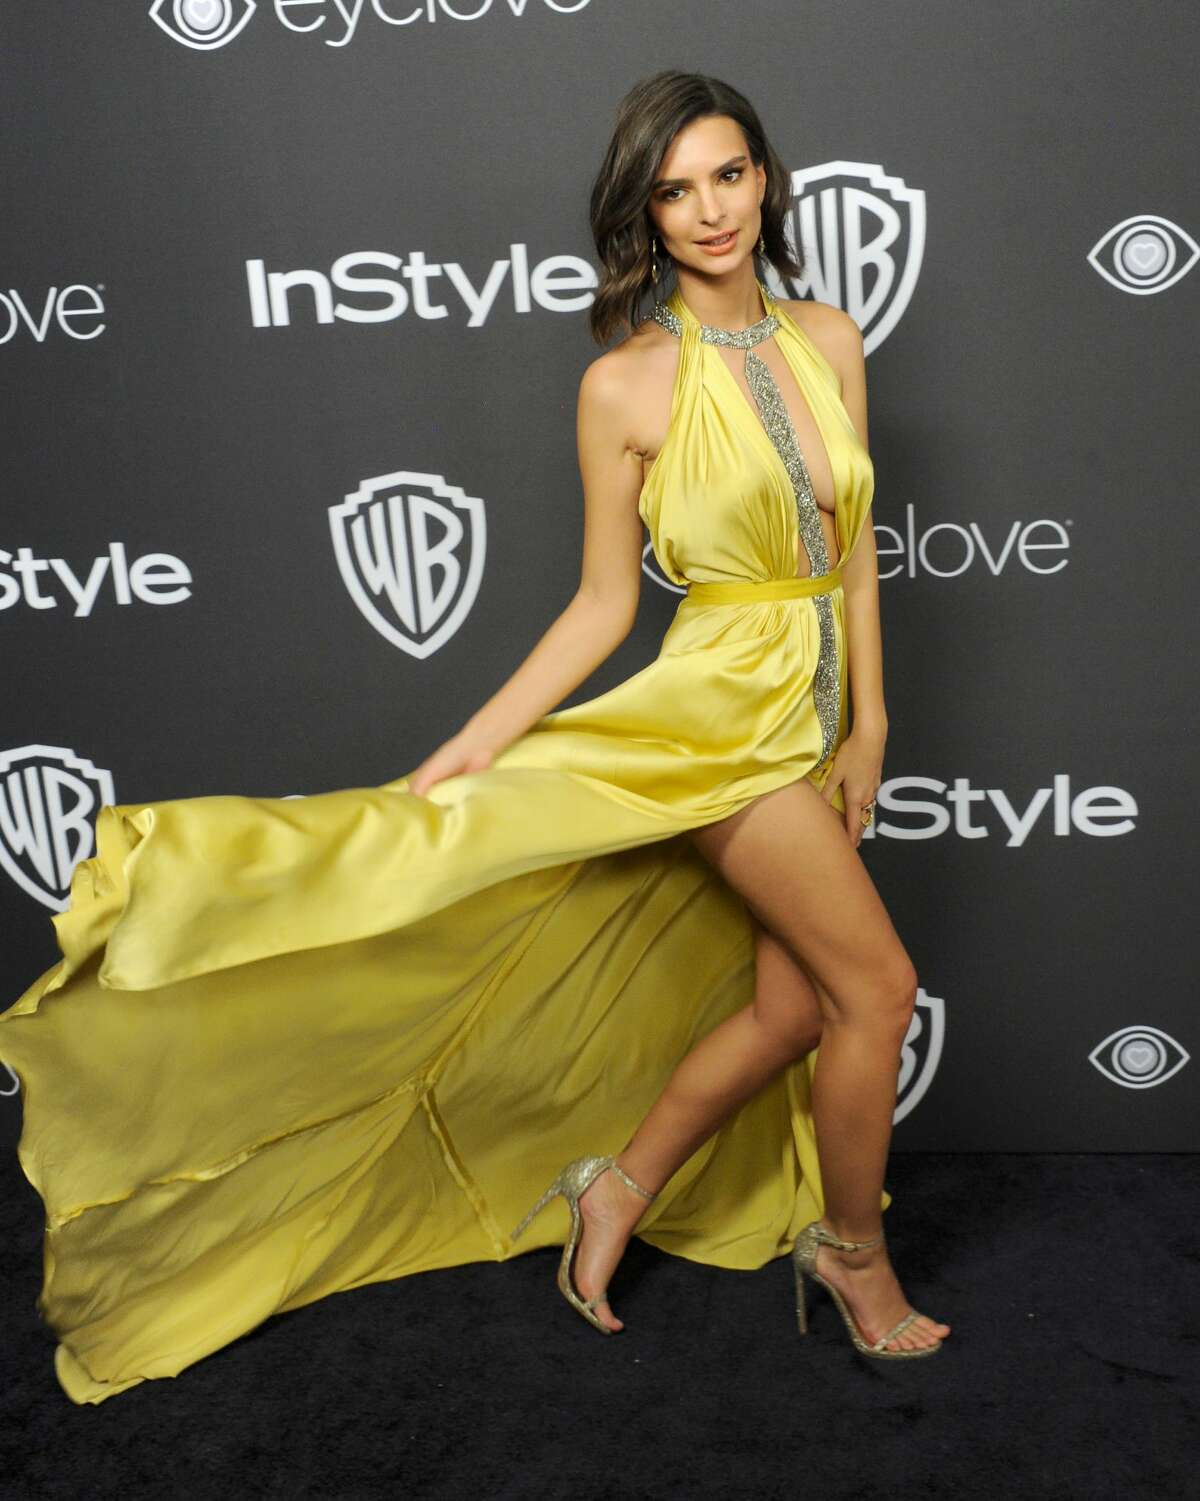 BEVERLY HILLS, CA - JANUARY 08: Emily Ratajkowski arrives at the 18th Annual Post-Golden Globes Party hosted by Warner Bros. Pictures and InStyle at The Beverly Hilton Hotel on January 8, 2017 in Beverly Hills, California. (Photo by Gregg DeGuire/FilmMagic)